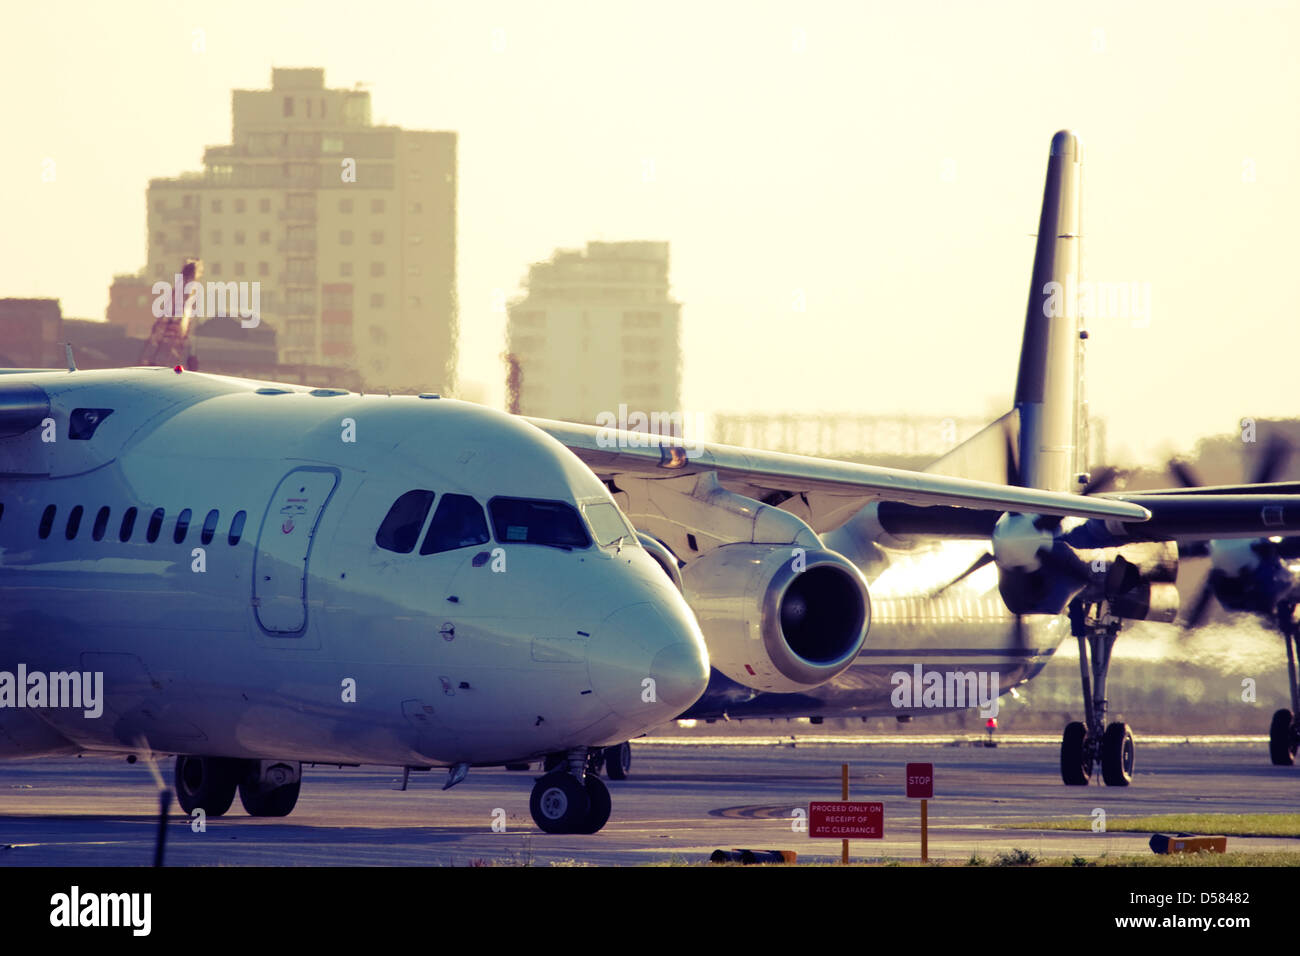 Commercial planes taxiing. Stock Photo